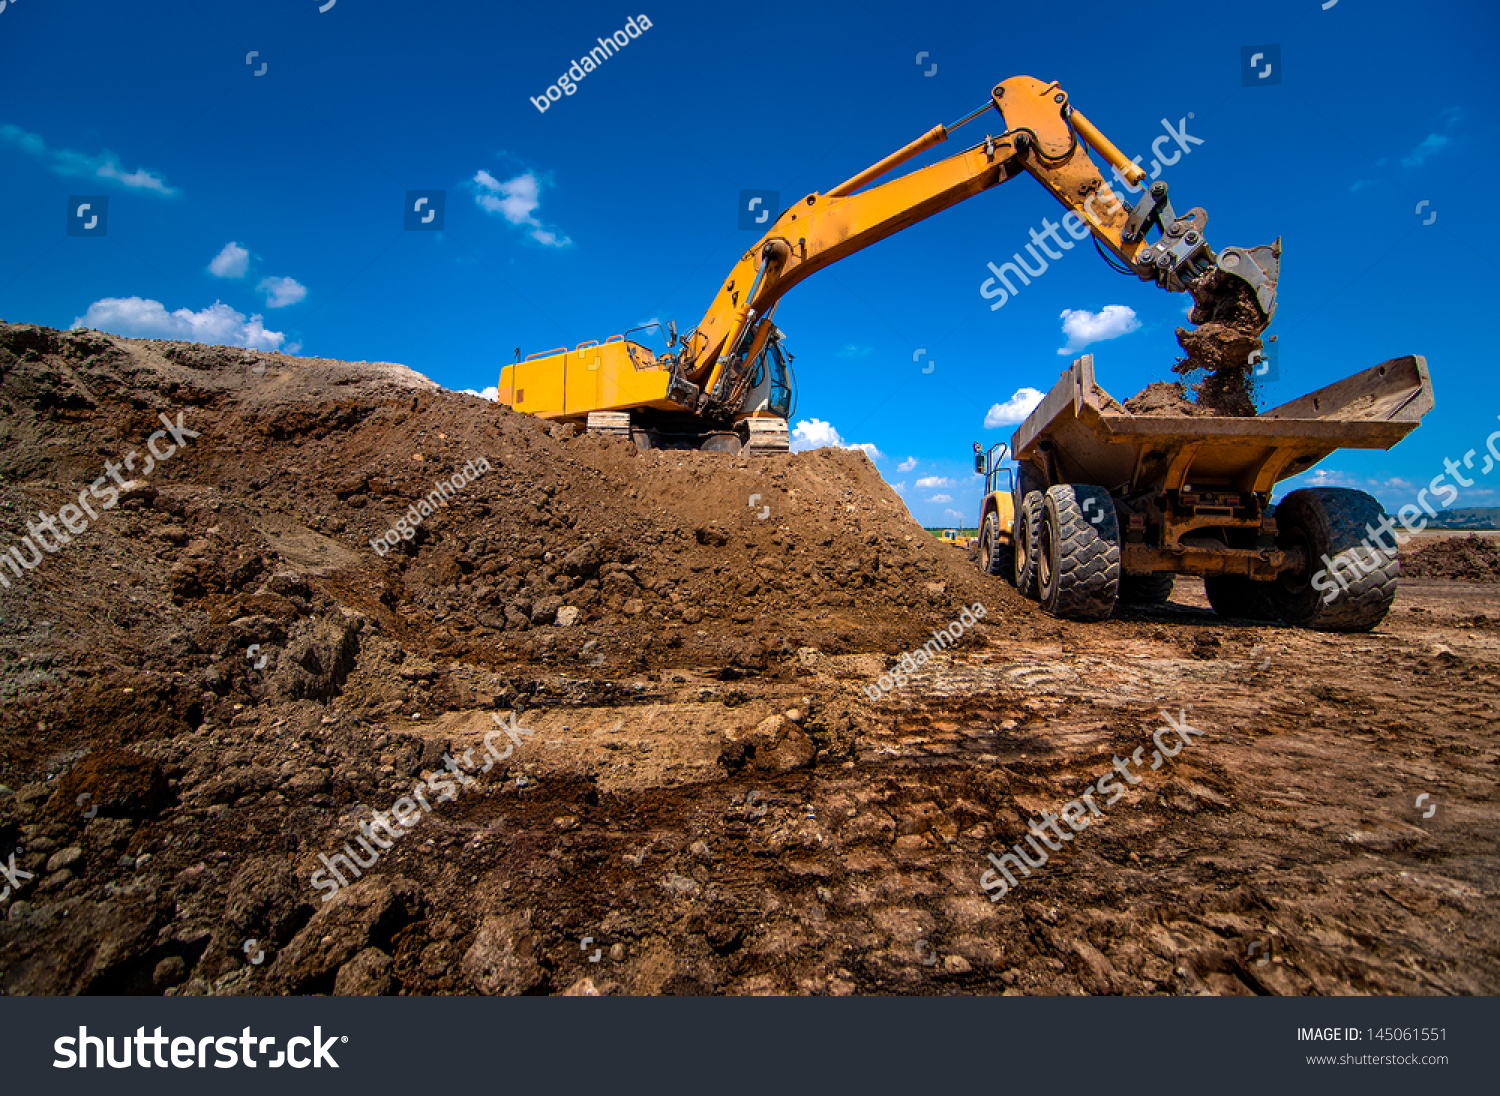 Highway Construction Materials : Industrial excavator loading soil material highway stock